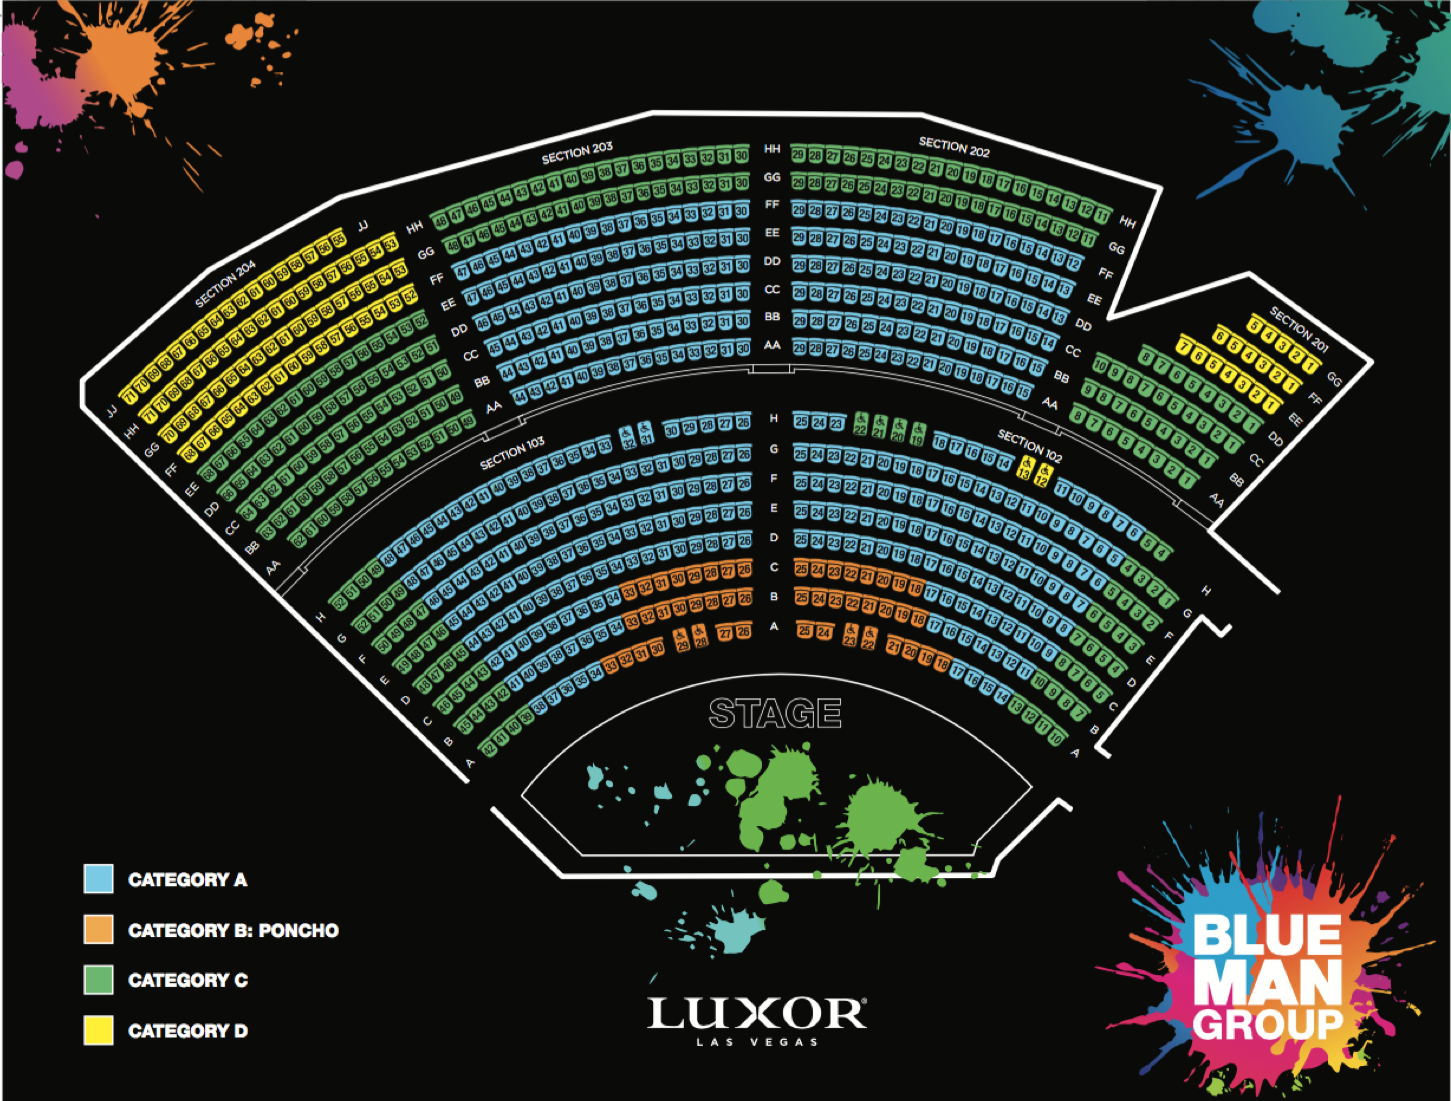 criss angel las vegas seating chart: Luxor seating chart blue man luxor seating chart blue man luxor